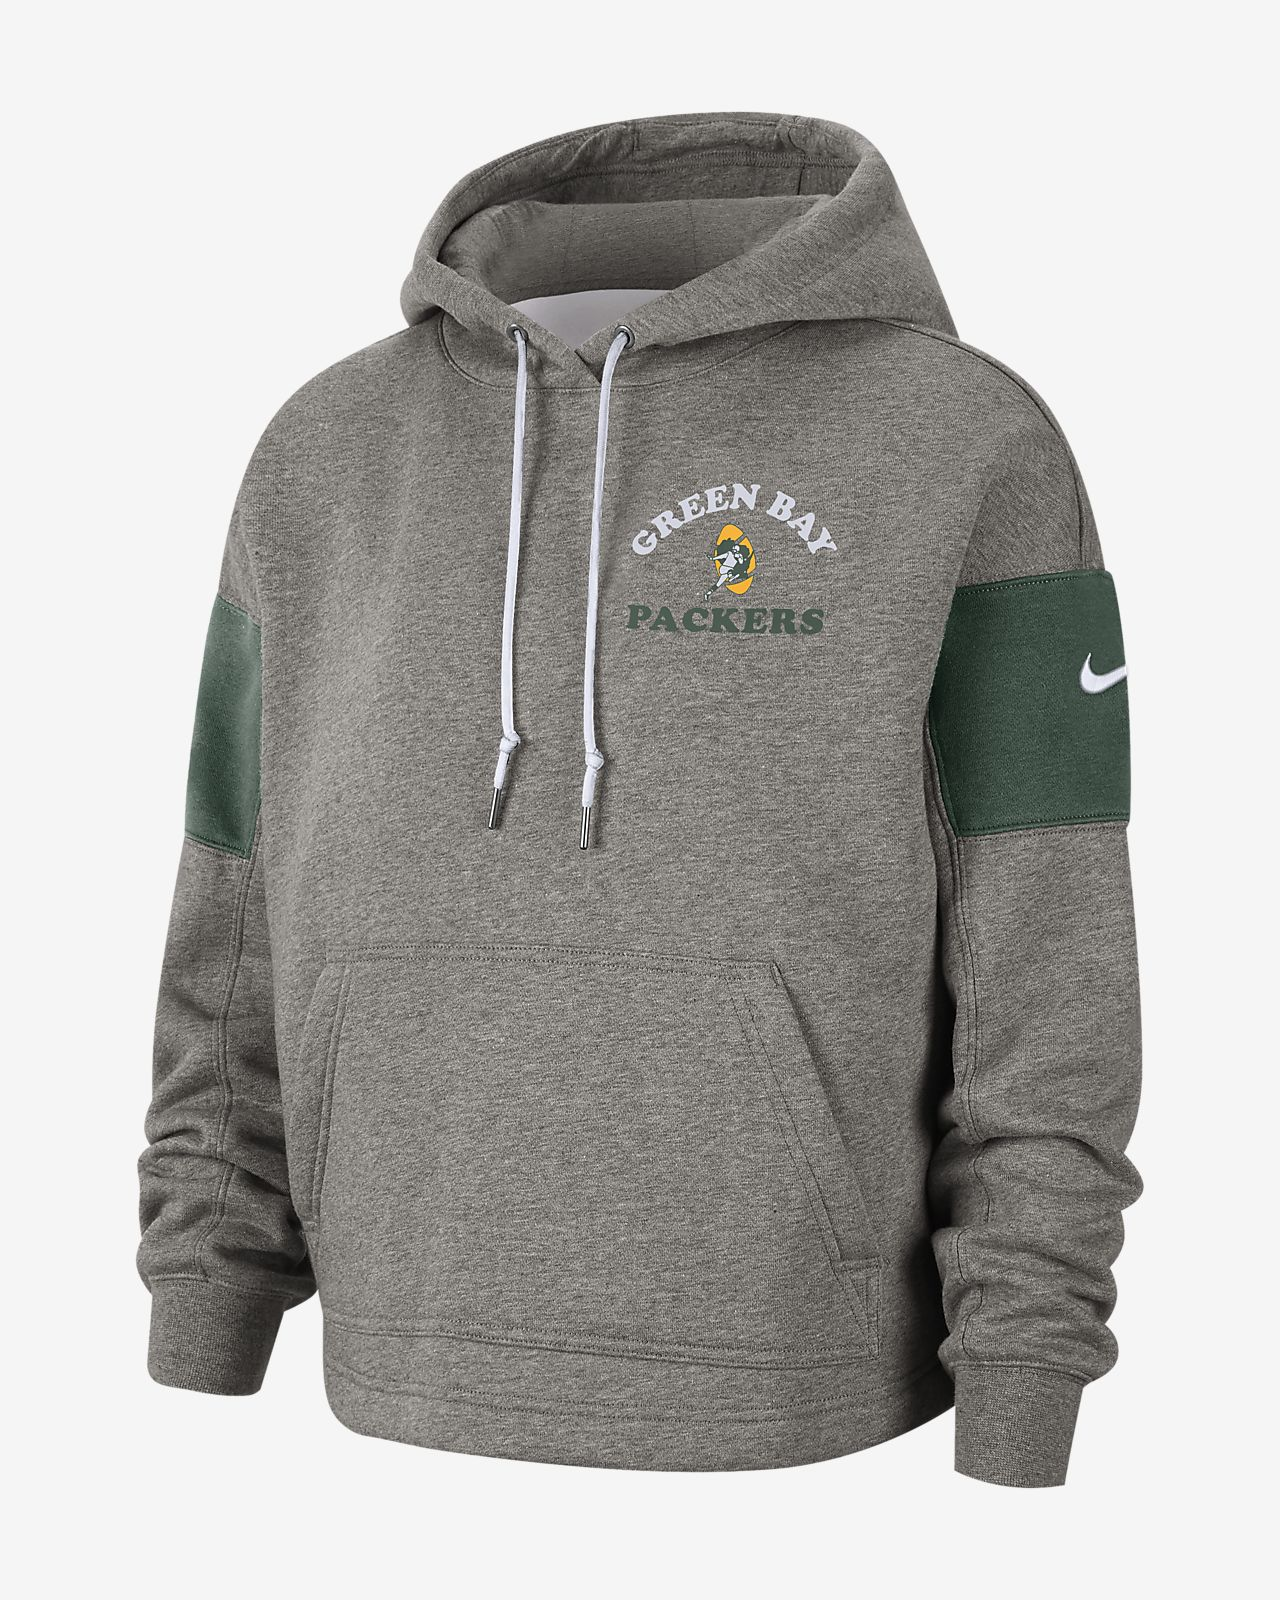 Nike Historic (NFL Packers) Women's Pullover Hoodie